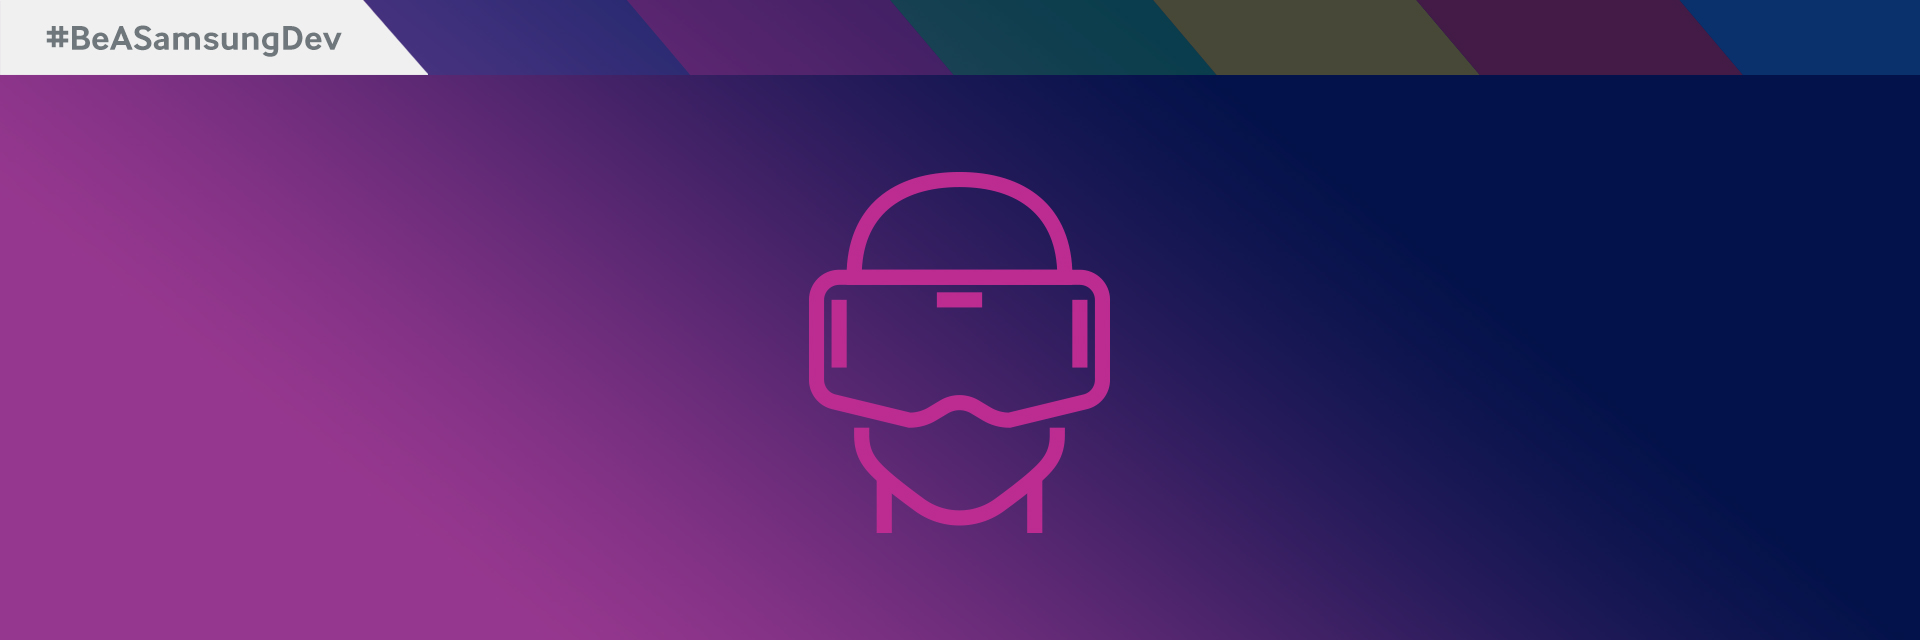 INTRODUCING VR<sup>U</sup>: A LOOK AT THE BEST IN VR AND HOW YOU CAN PRODUCE IT